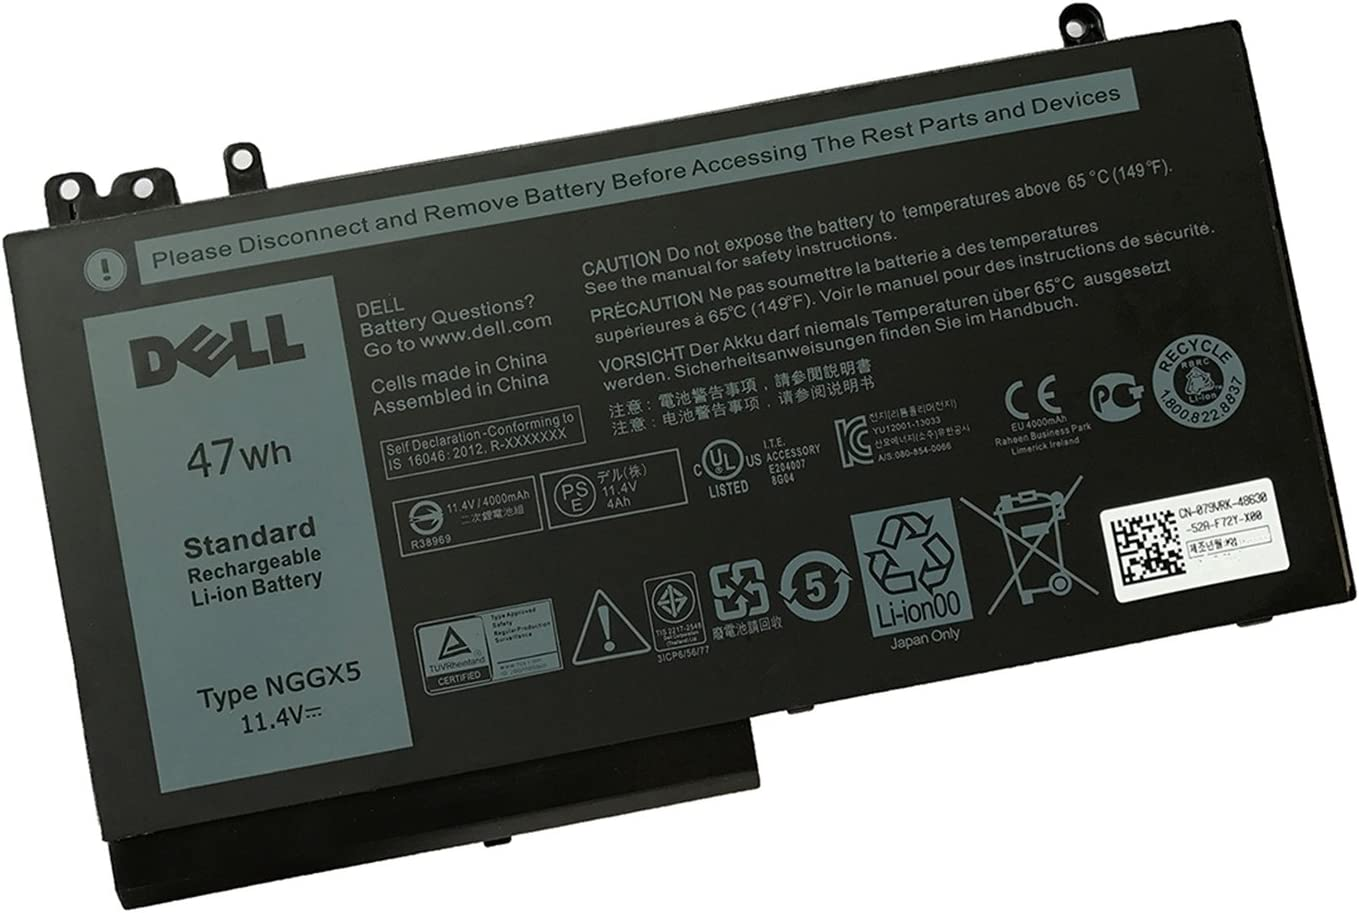 DELL NGGX5 11.4V 47WH Lithium Polymer Battery for Dell Latitude E5270 E5470 E5570 Notebook P/N: JY8D6 954DF 0JY8D6